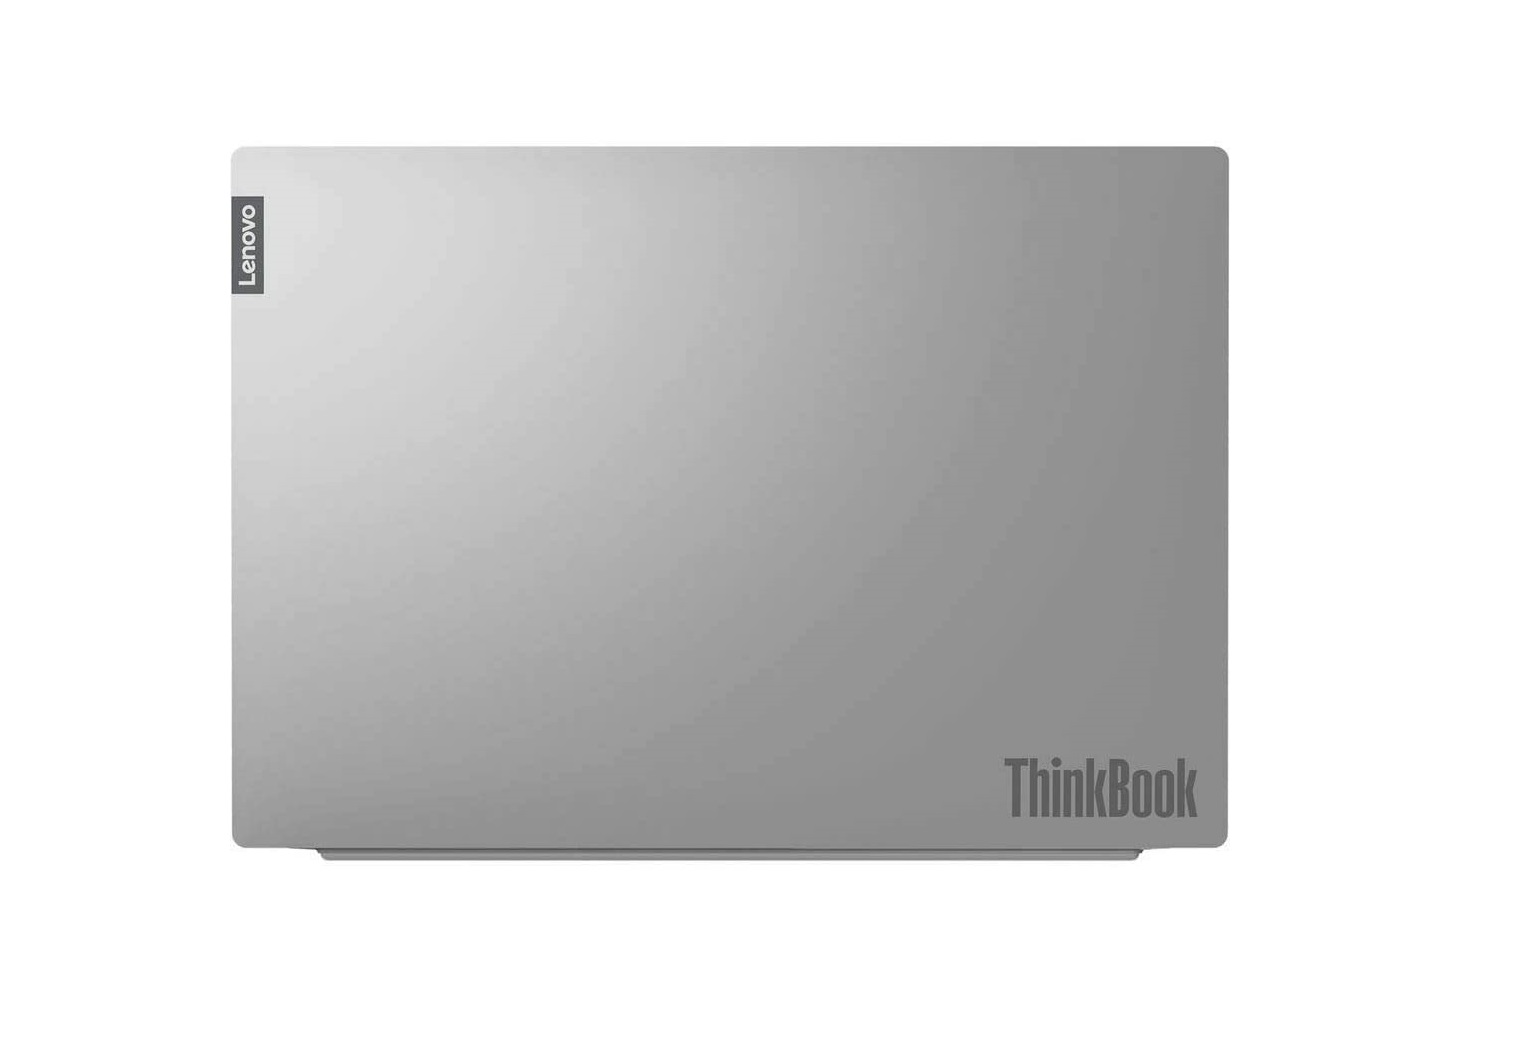 storage/backend/assets/images/product/1615357133QRGg-Thinkbook-5.jpg